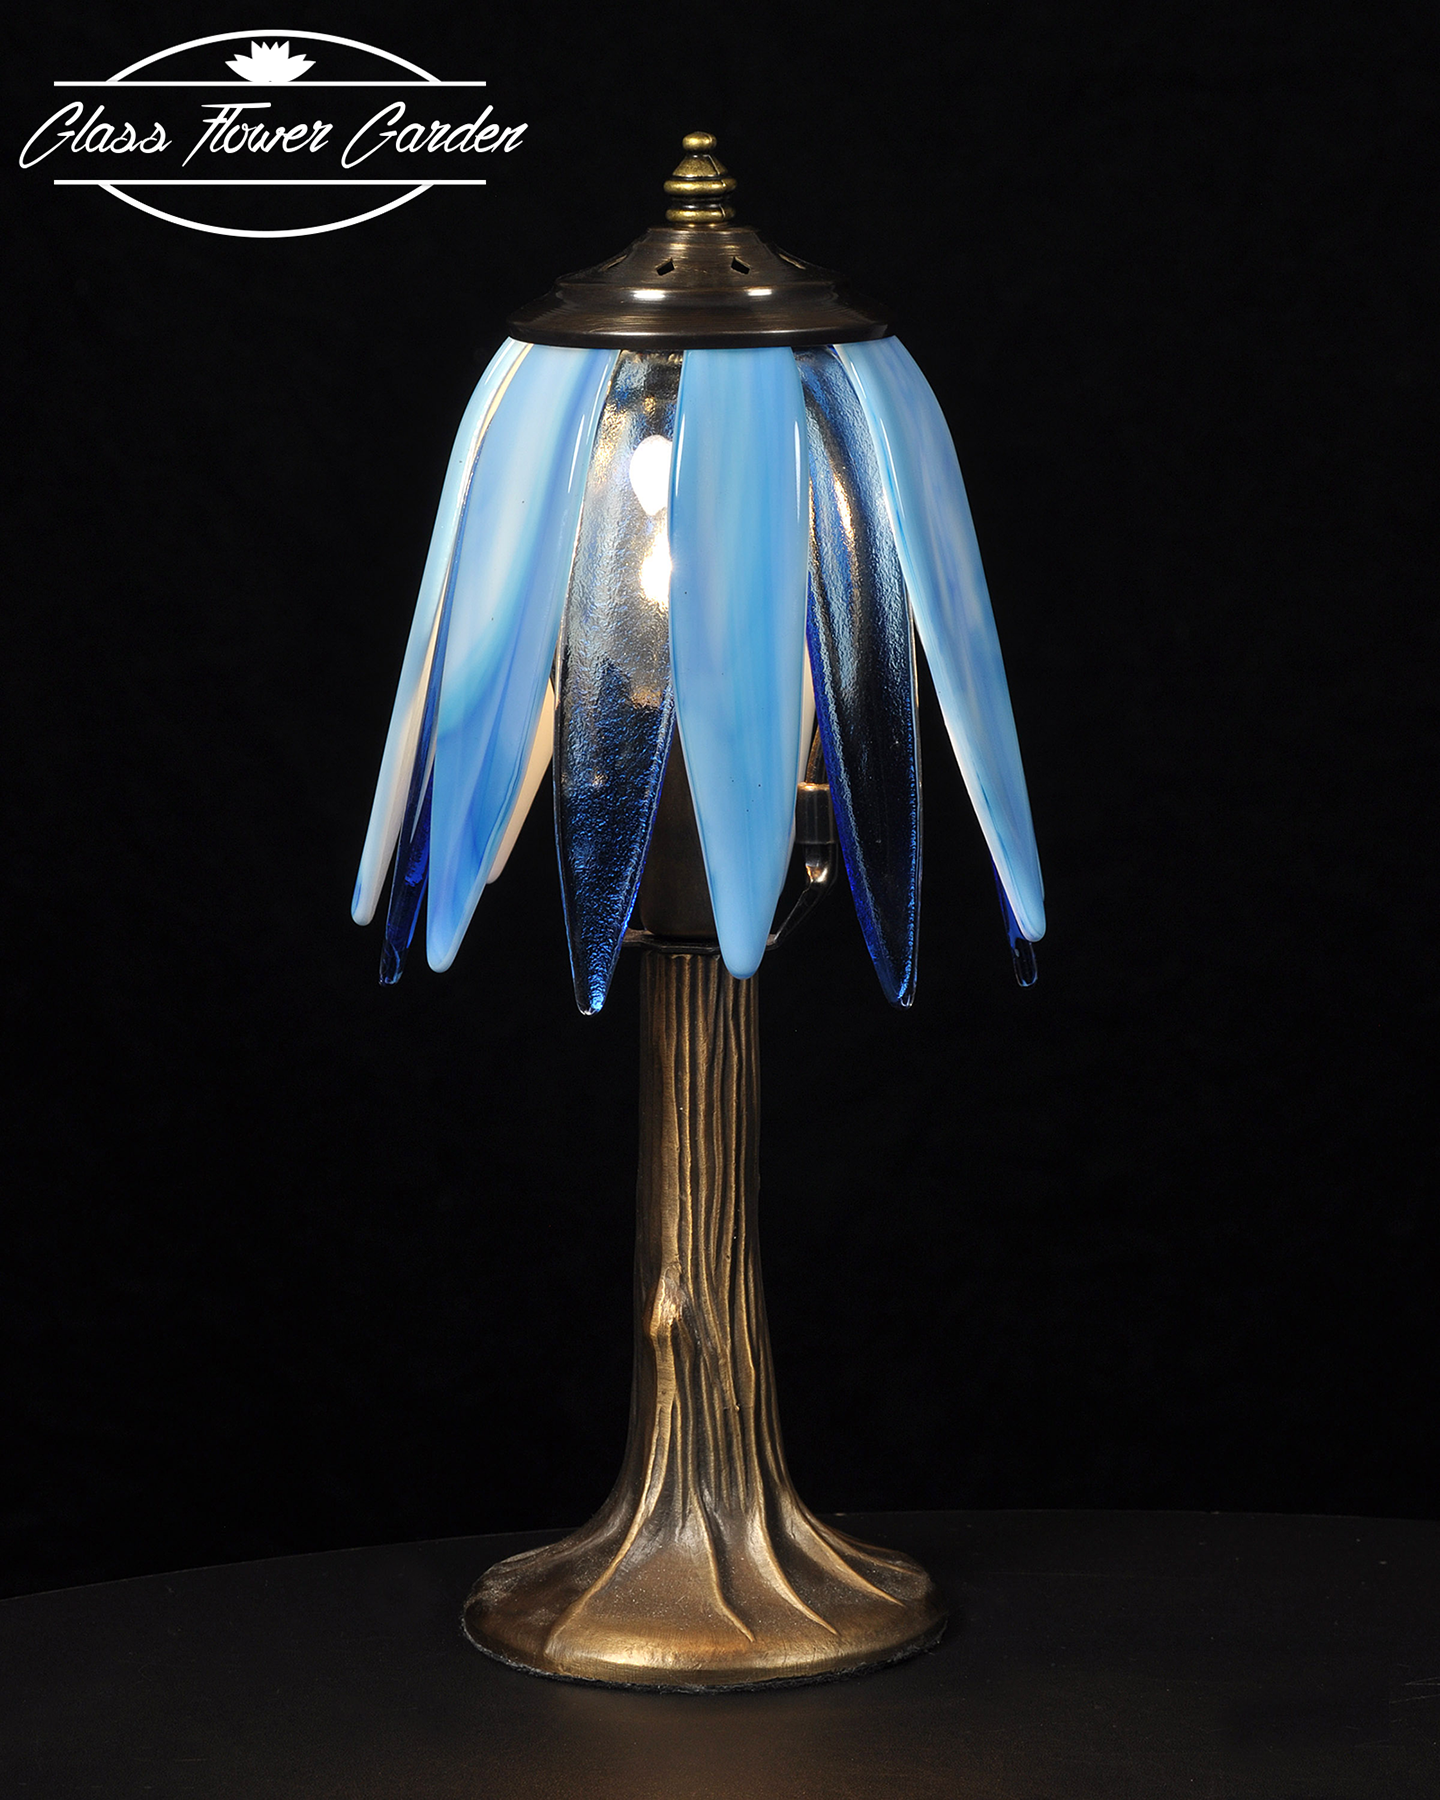 Blue moon glass shaded lamp glass flower garden online store blue moon glass shaded lamp mozeypictures Gallery